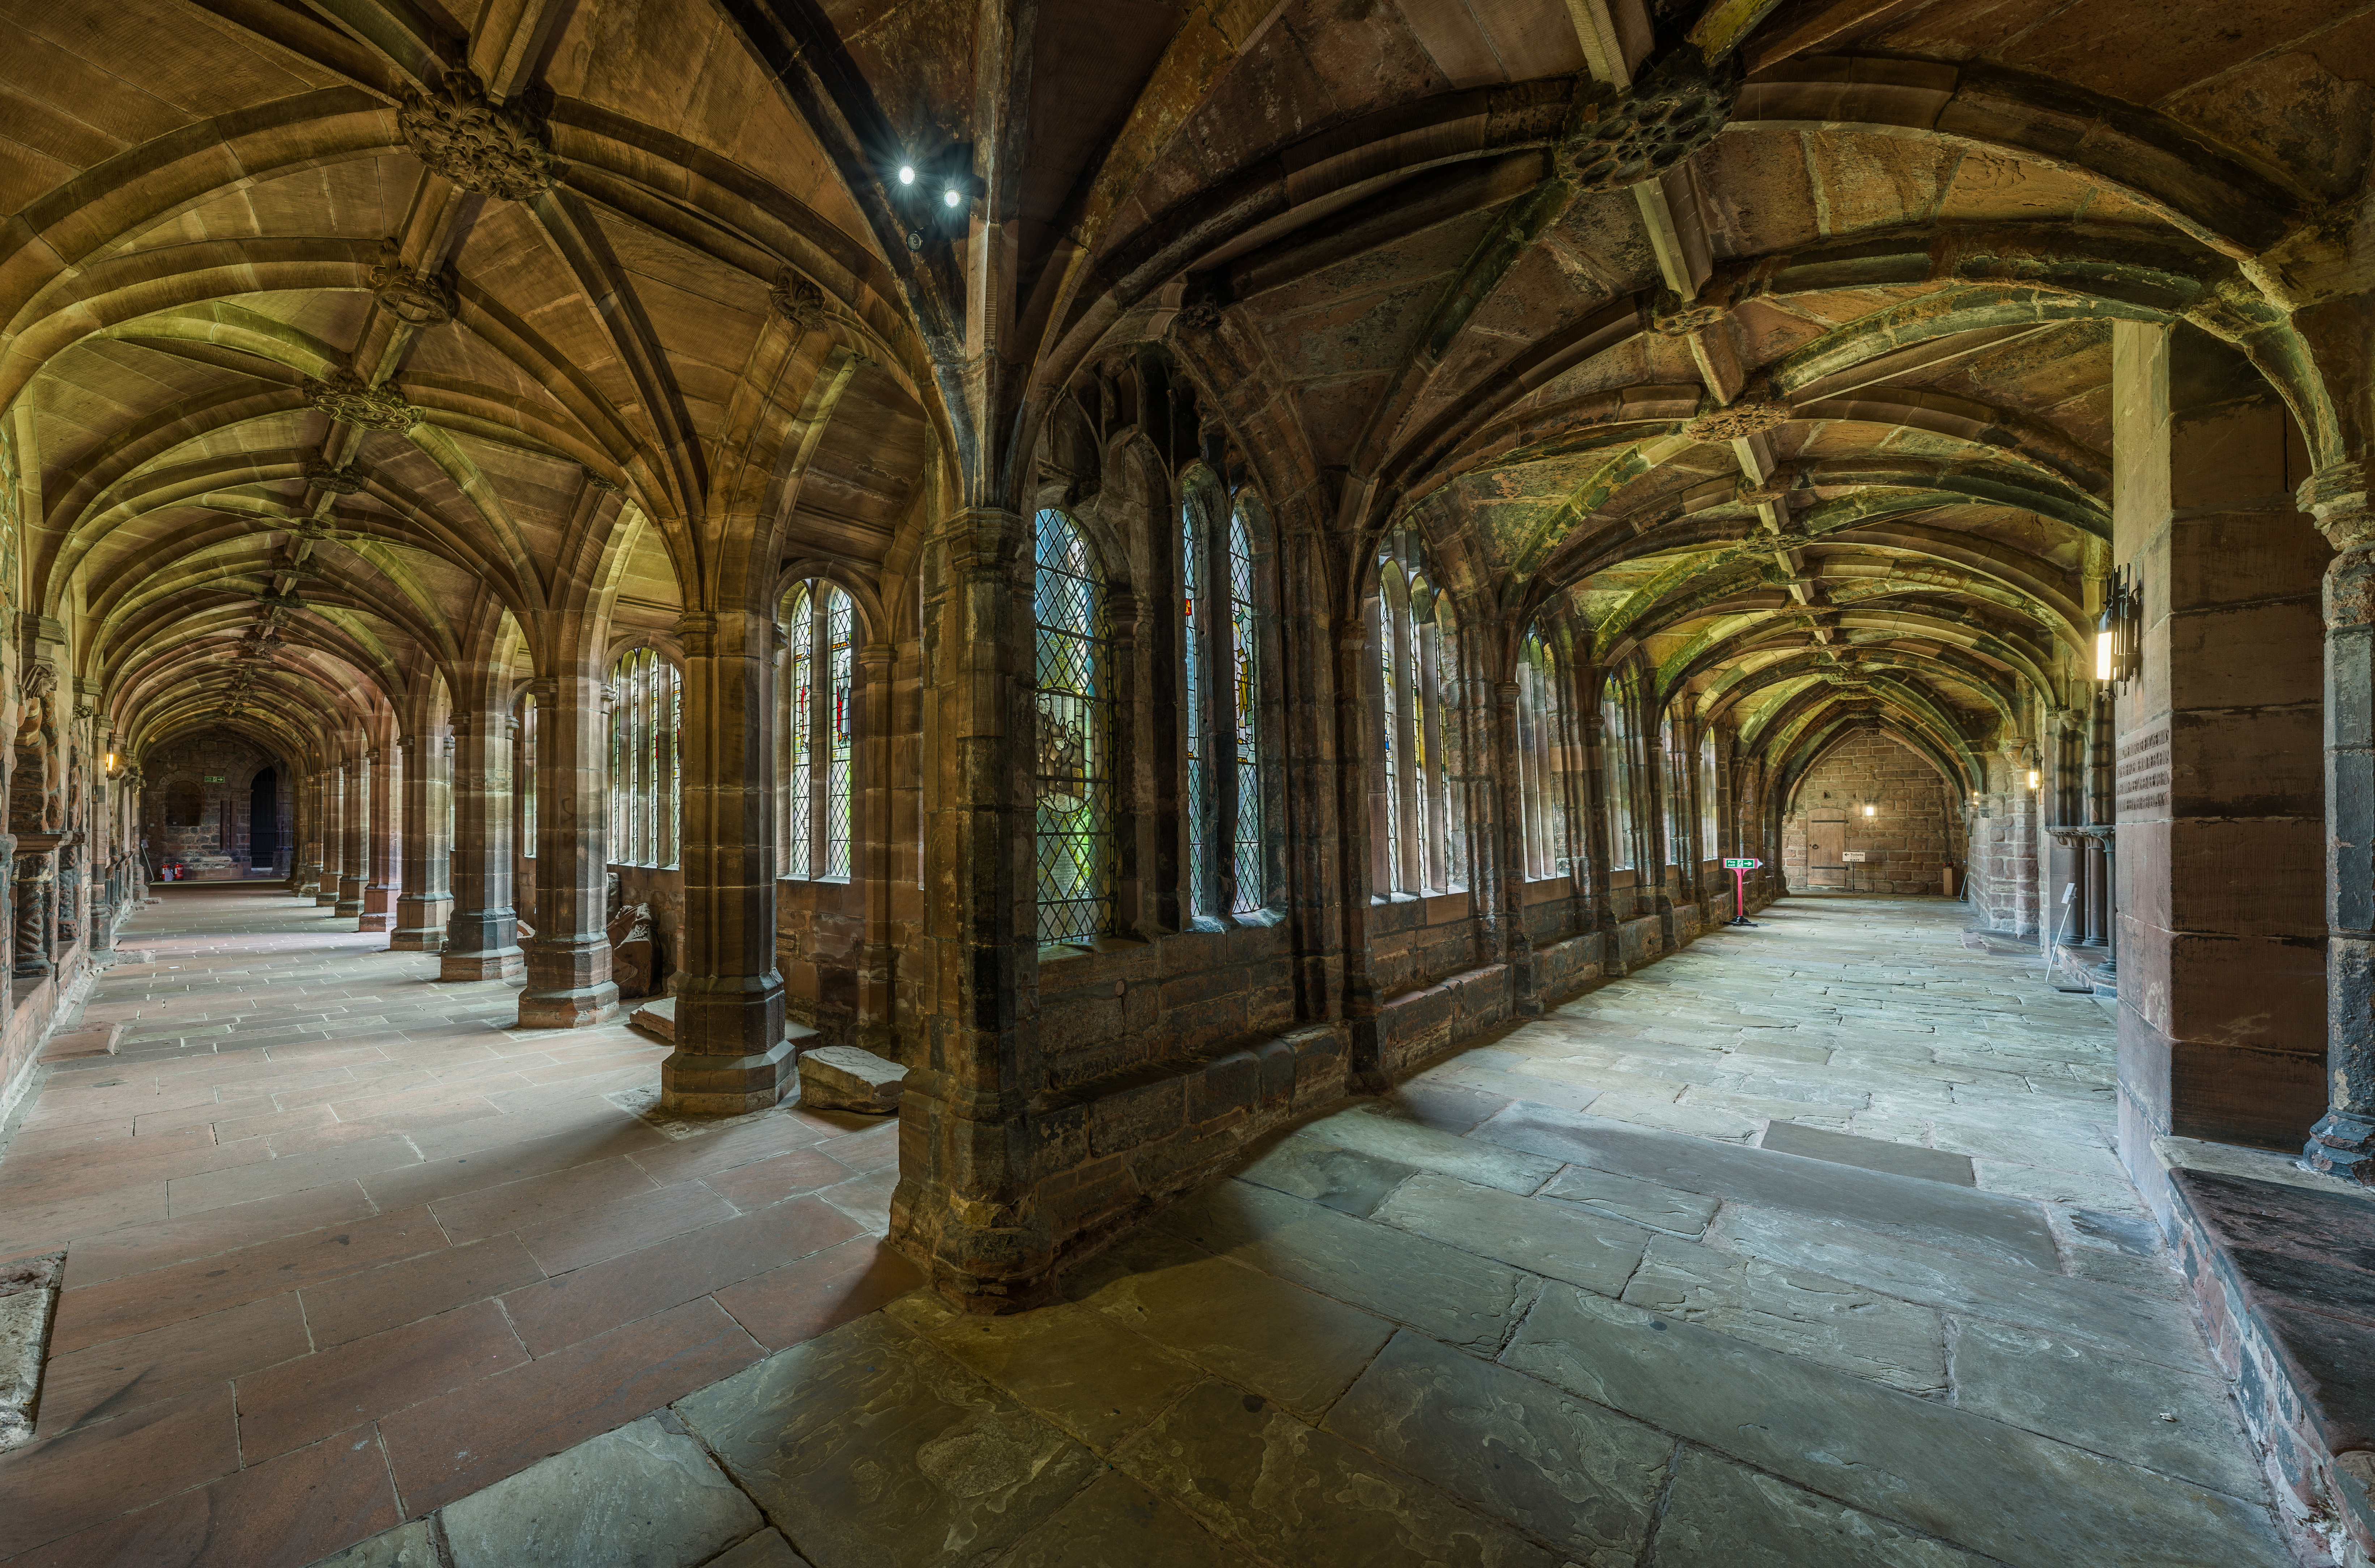 Image of interior of Chester Cathedral Cloister, photograph by David Iliff (Wikimedia Commons, CC BY-SA 3.0 licence)